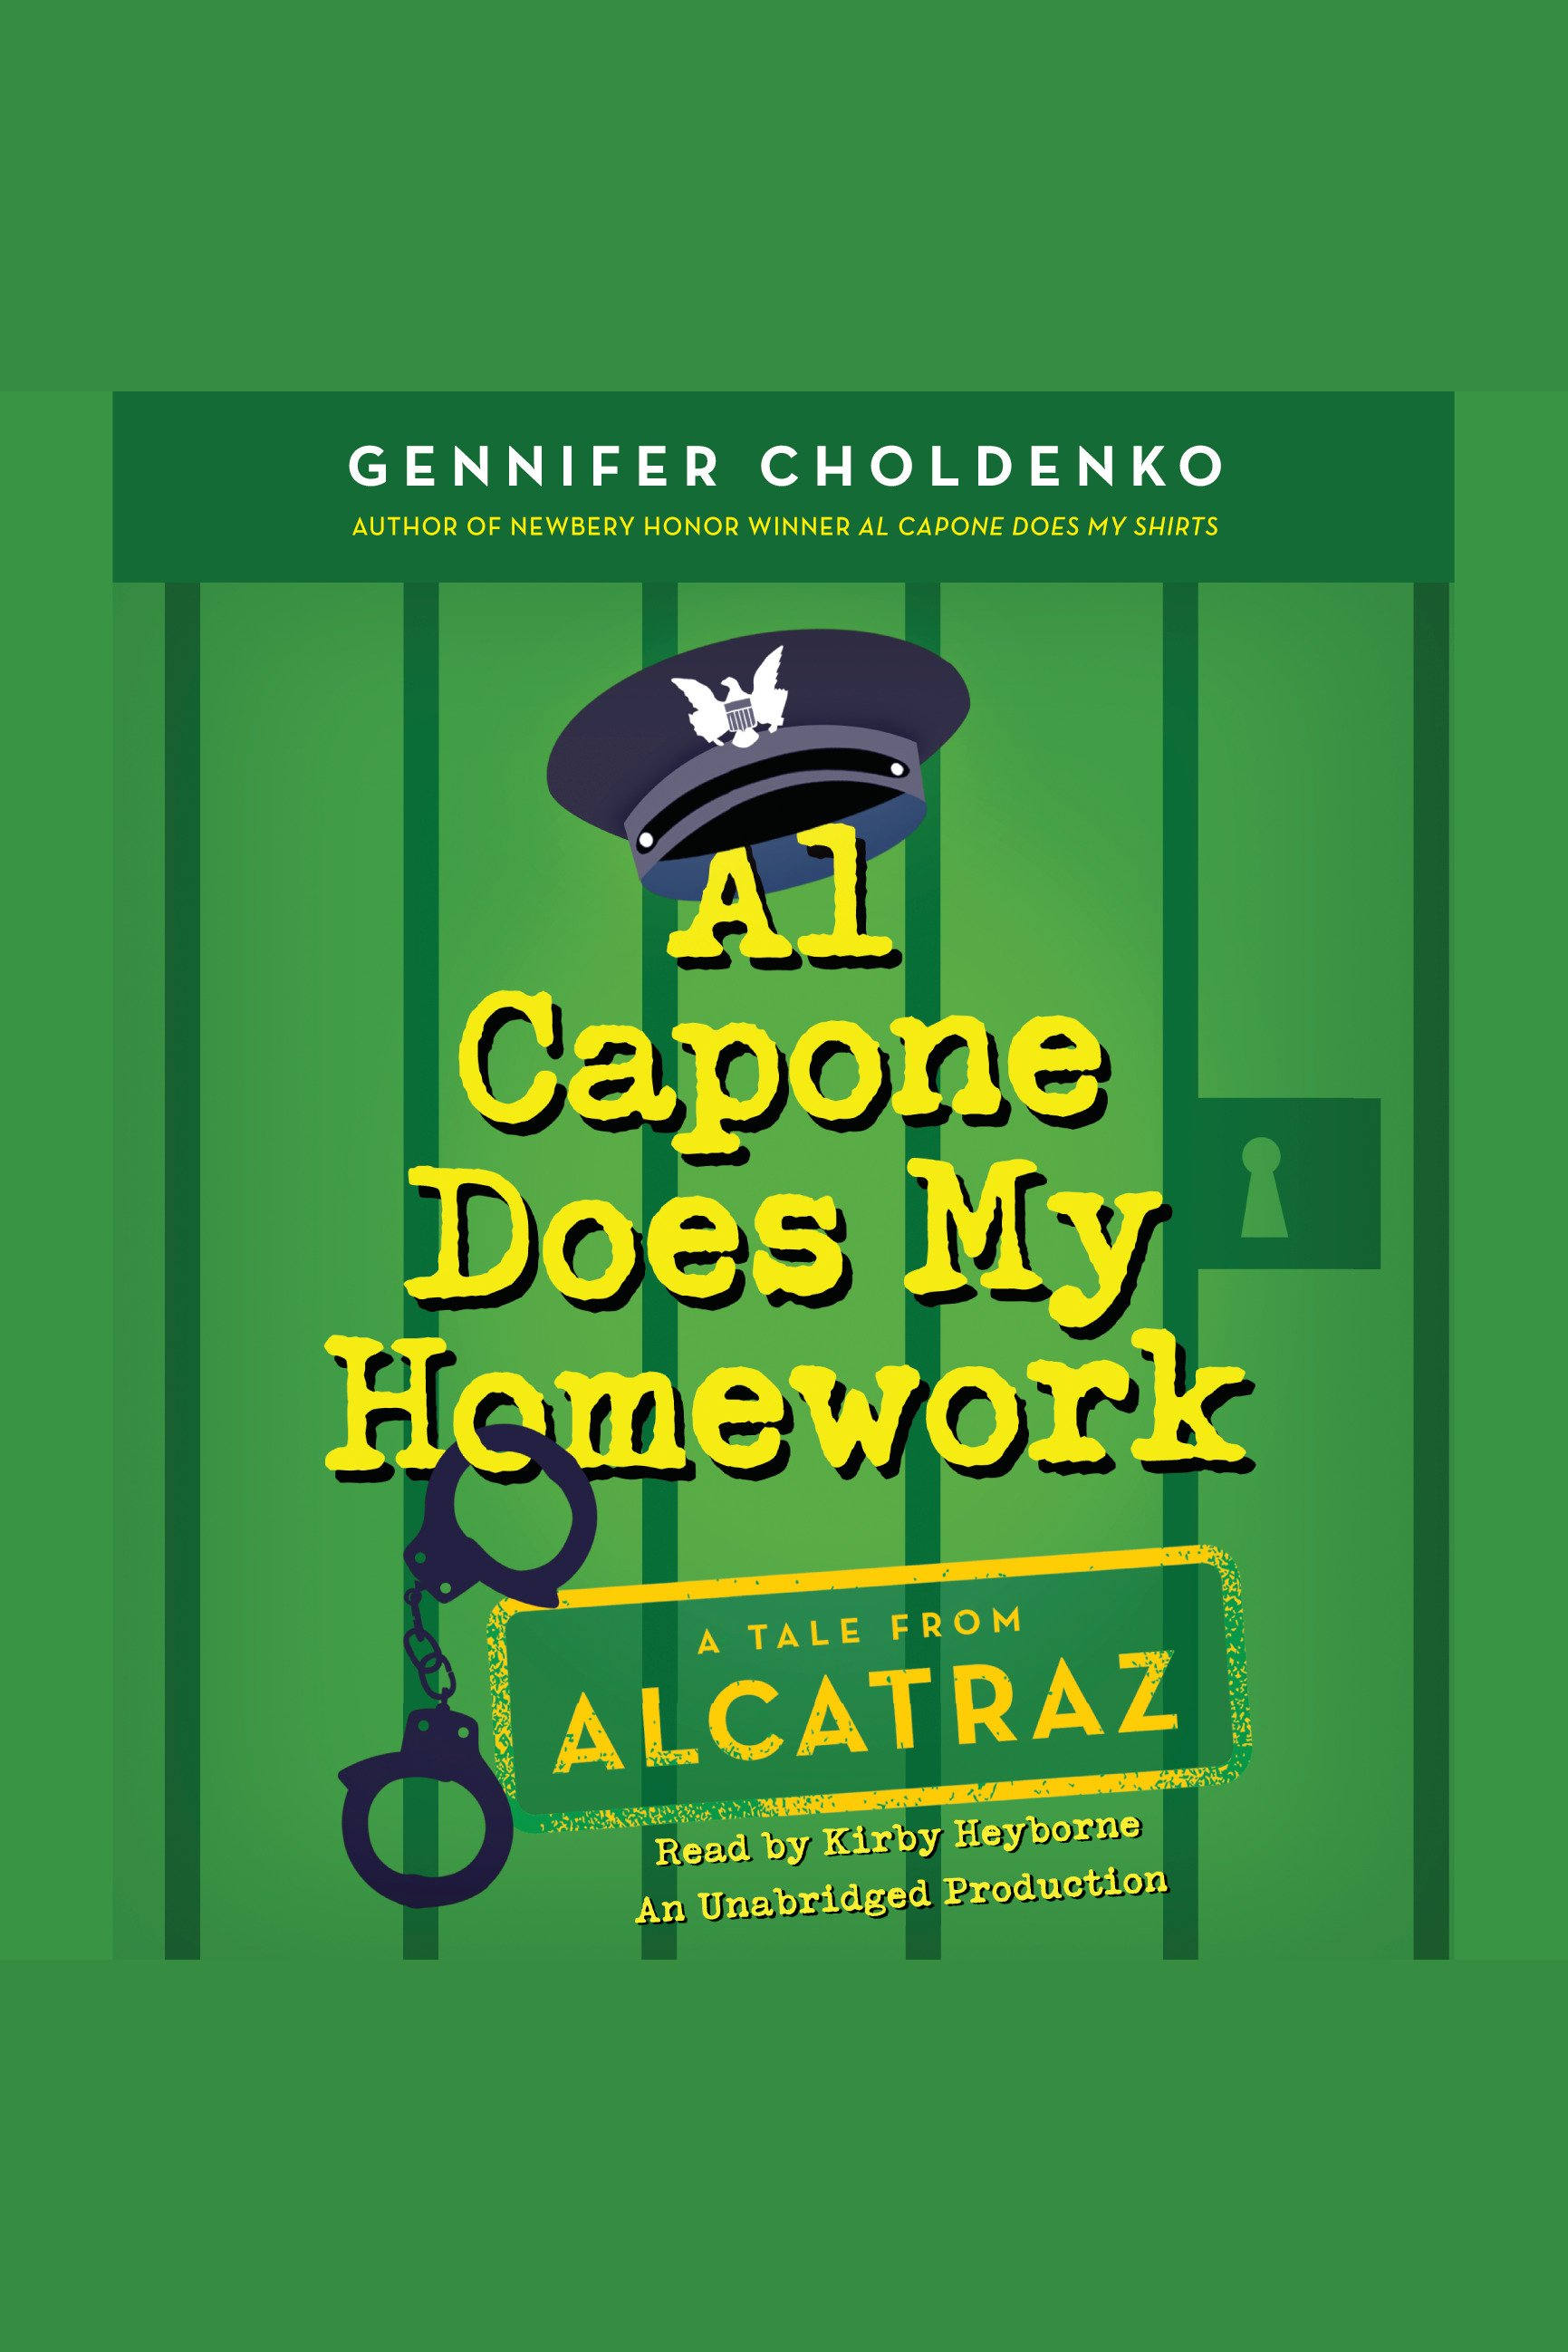 Al Capone does my homework cover image